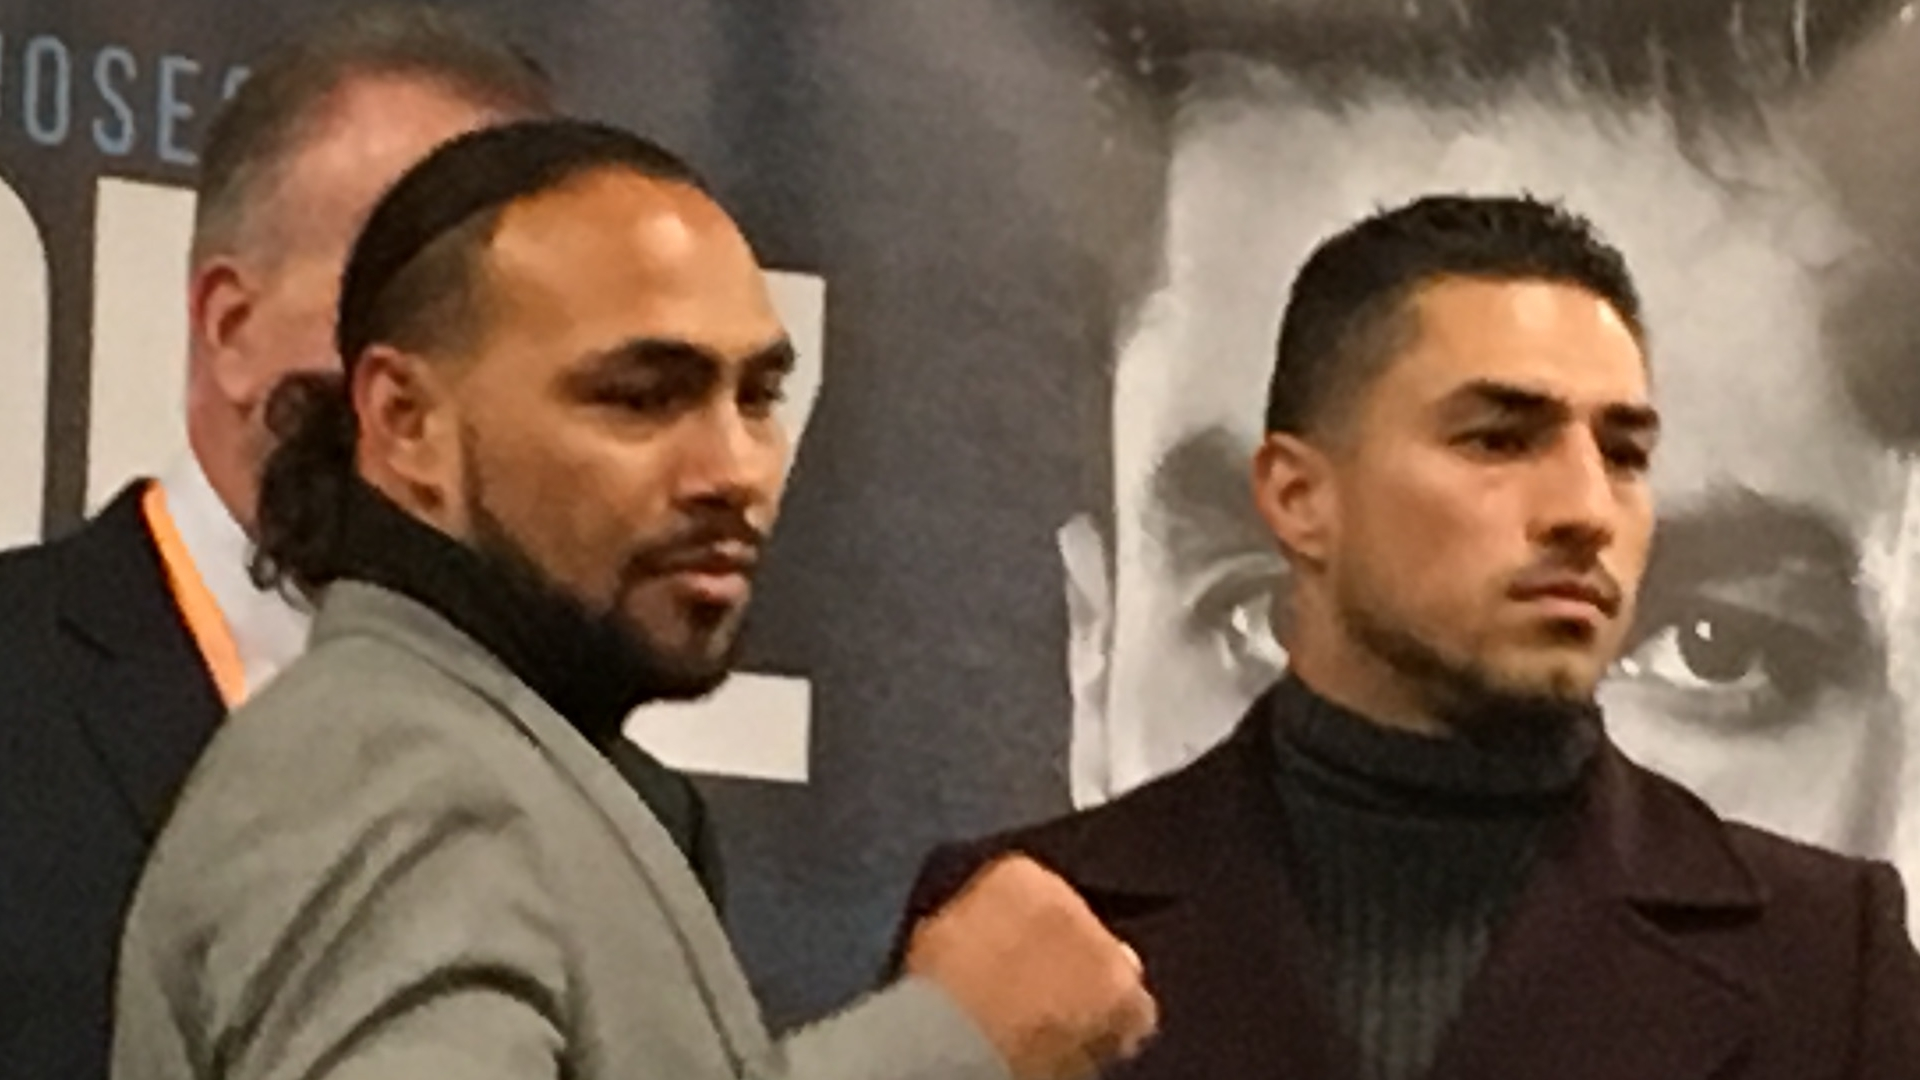 Keith Thurman plays a game of 'One Time' with Sporting News